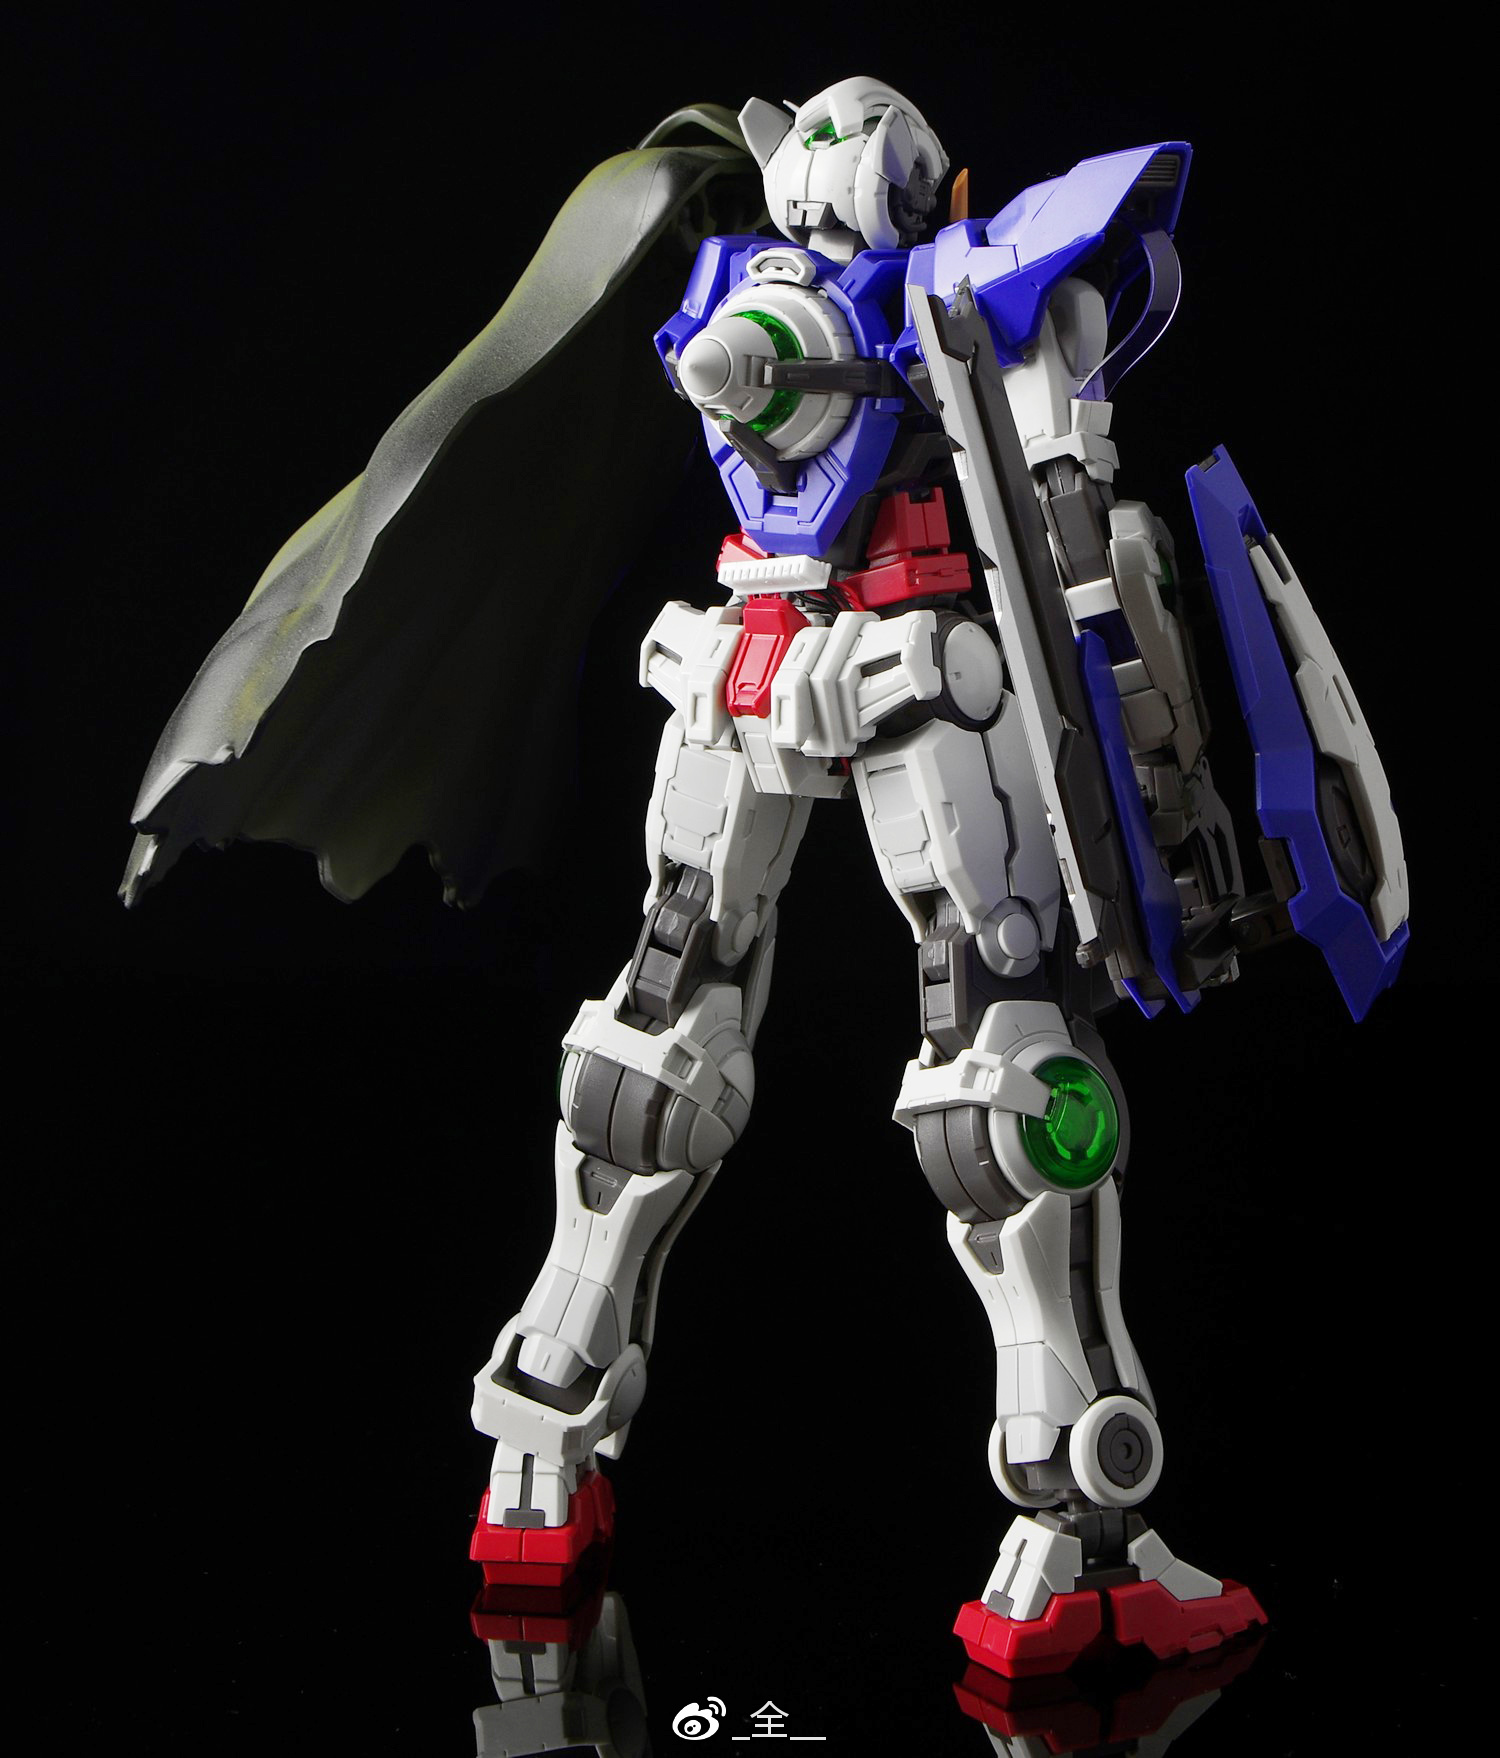 S269_mg_exia_led_hobby_star_inask_072.jpg